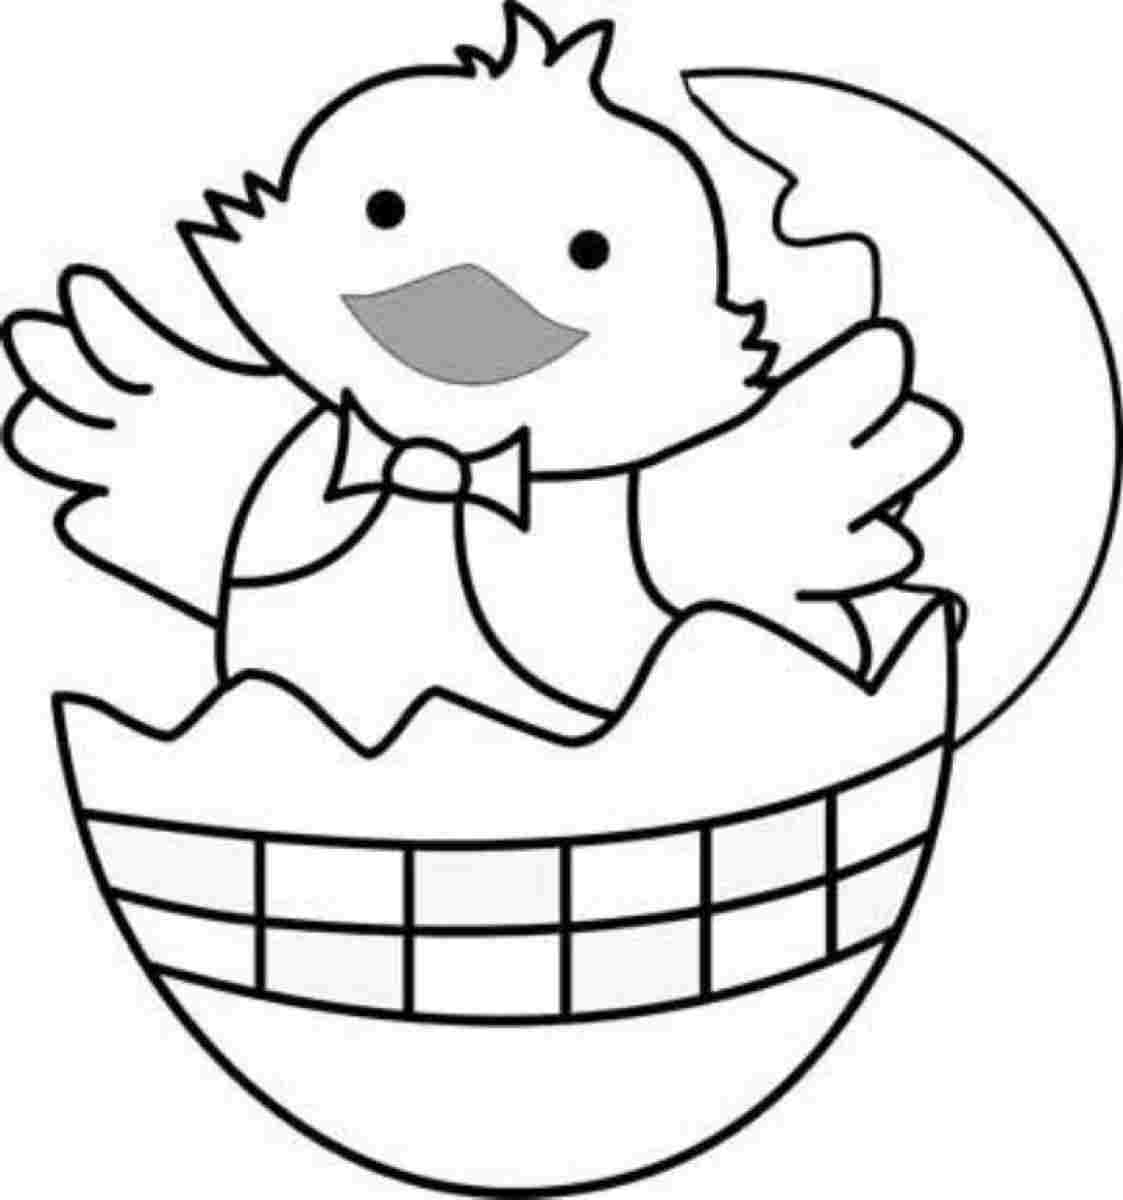 baby chick coloring page baby chicks coloring page woo jr kids activities baby coloring page chick